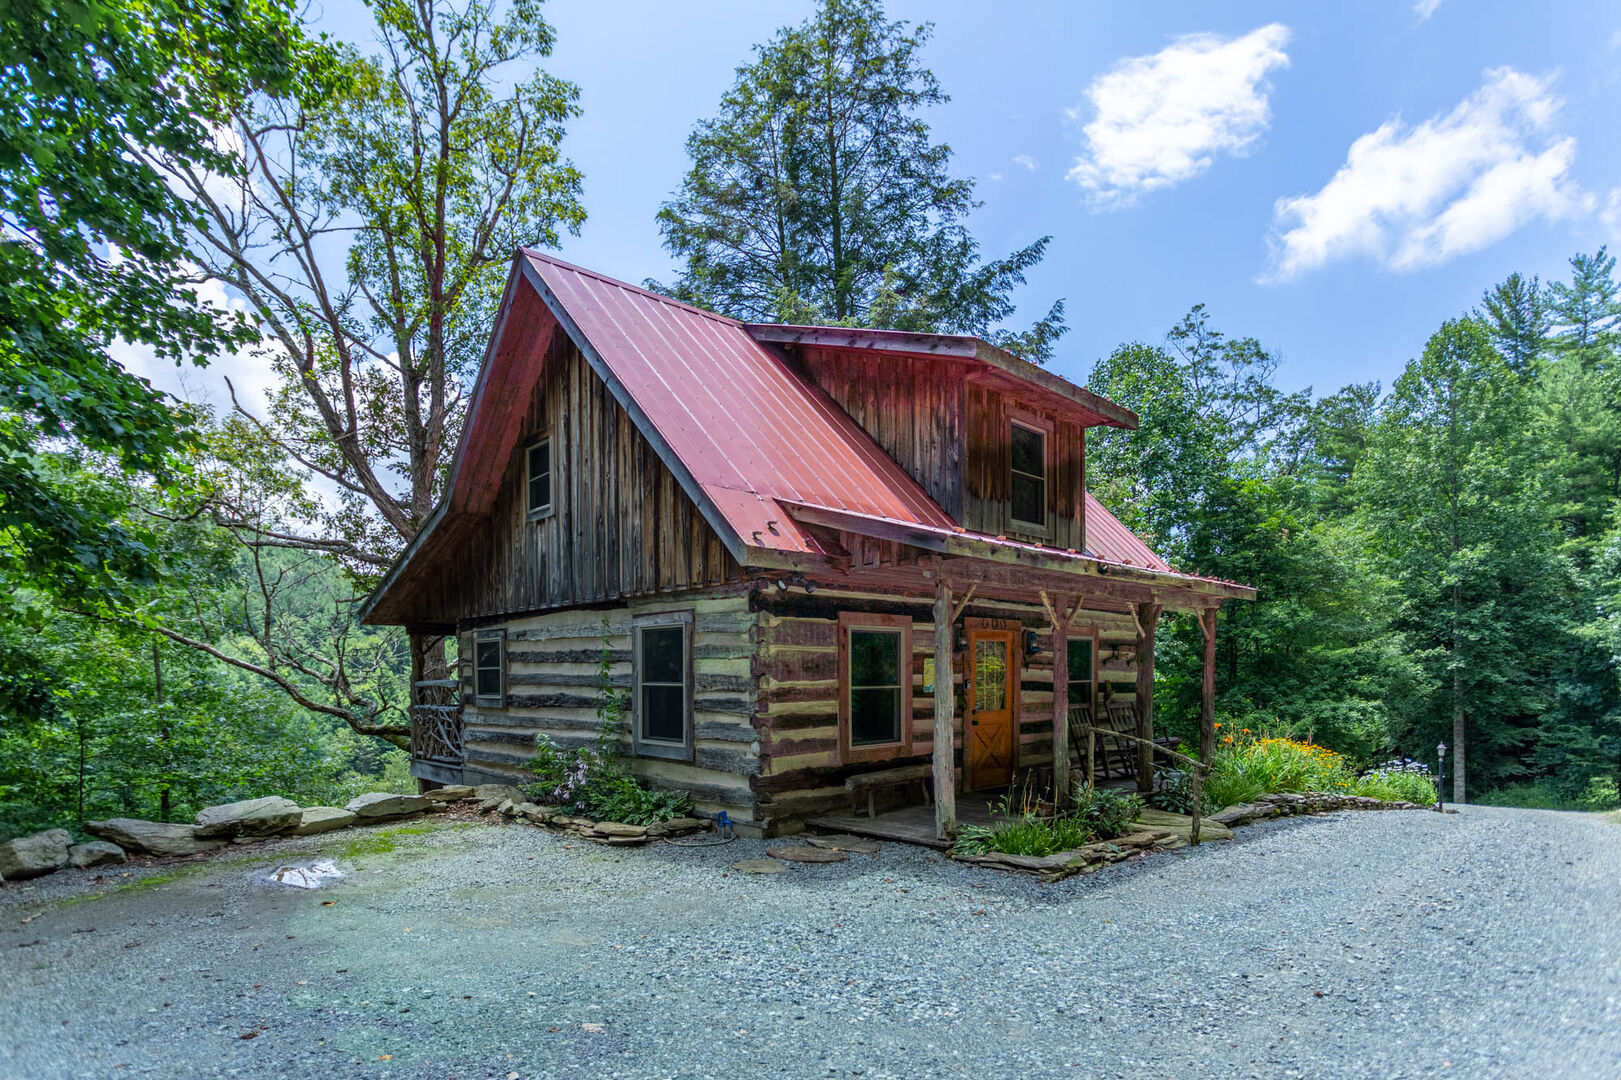 Nc Mountain Cabins For Rent For Christmas 2020 Property Info   The Best Boone NC Cabin Rentals and Blowing Rock